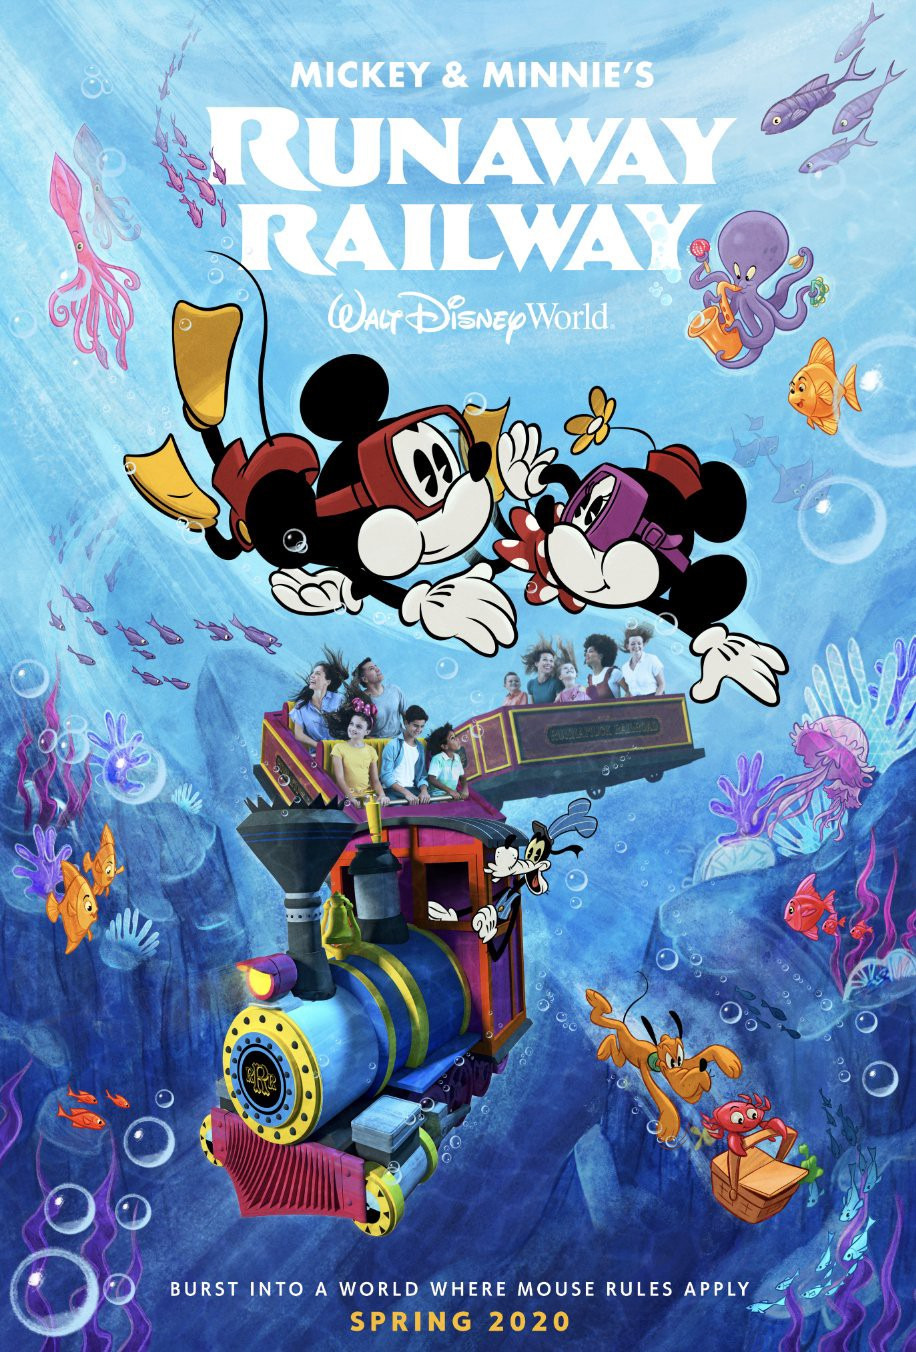 First Day Spring 2020.Mickey Minnie S Runaway Railway Receives New Poster